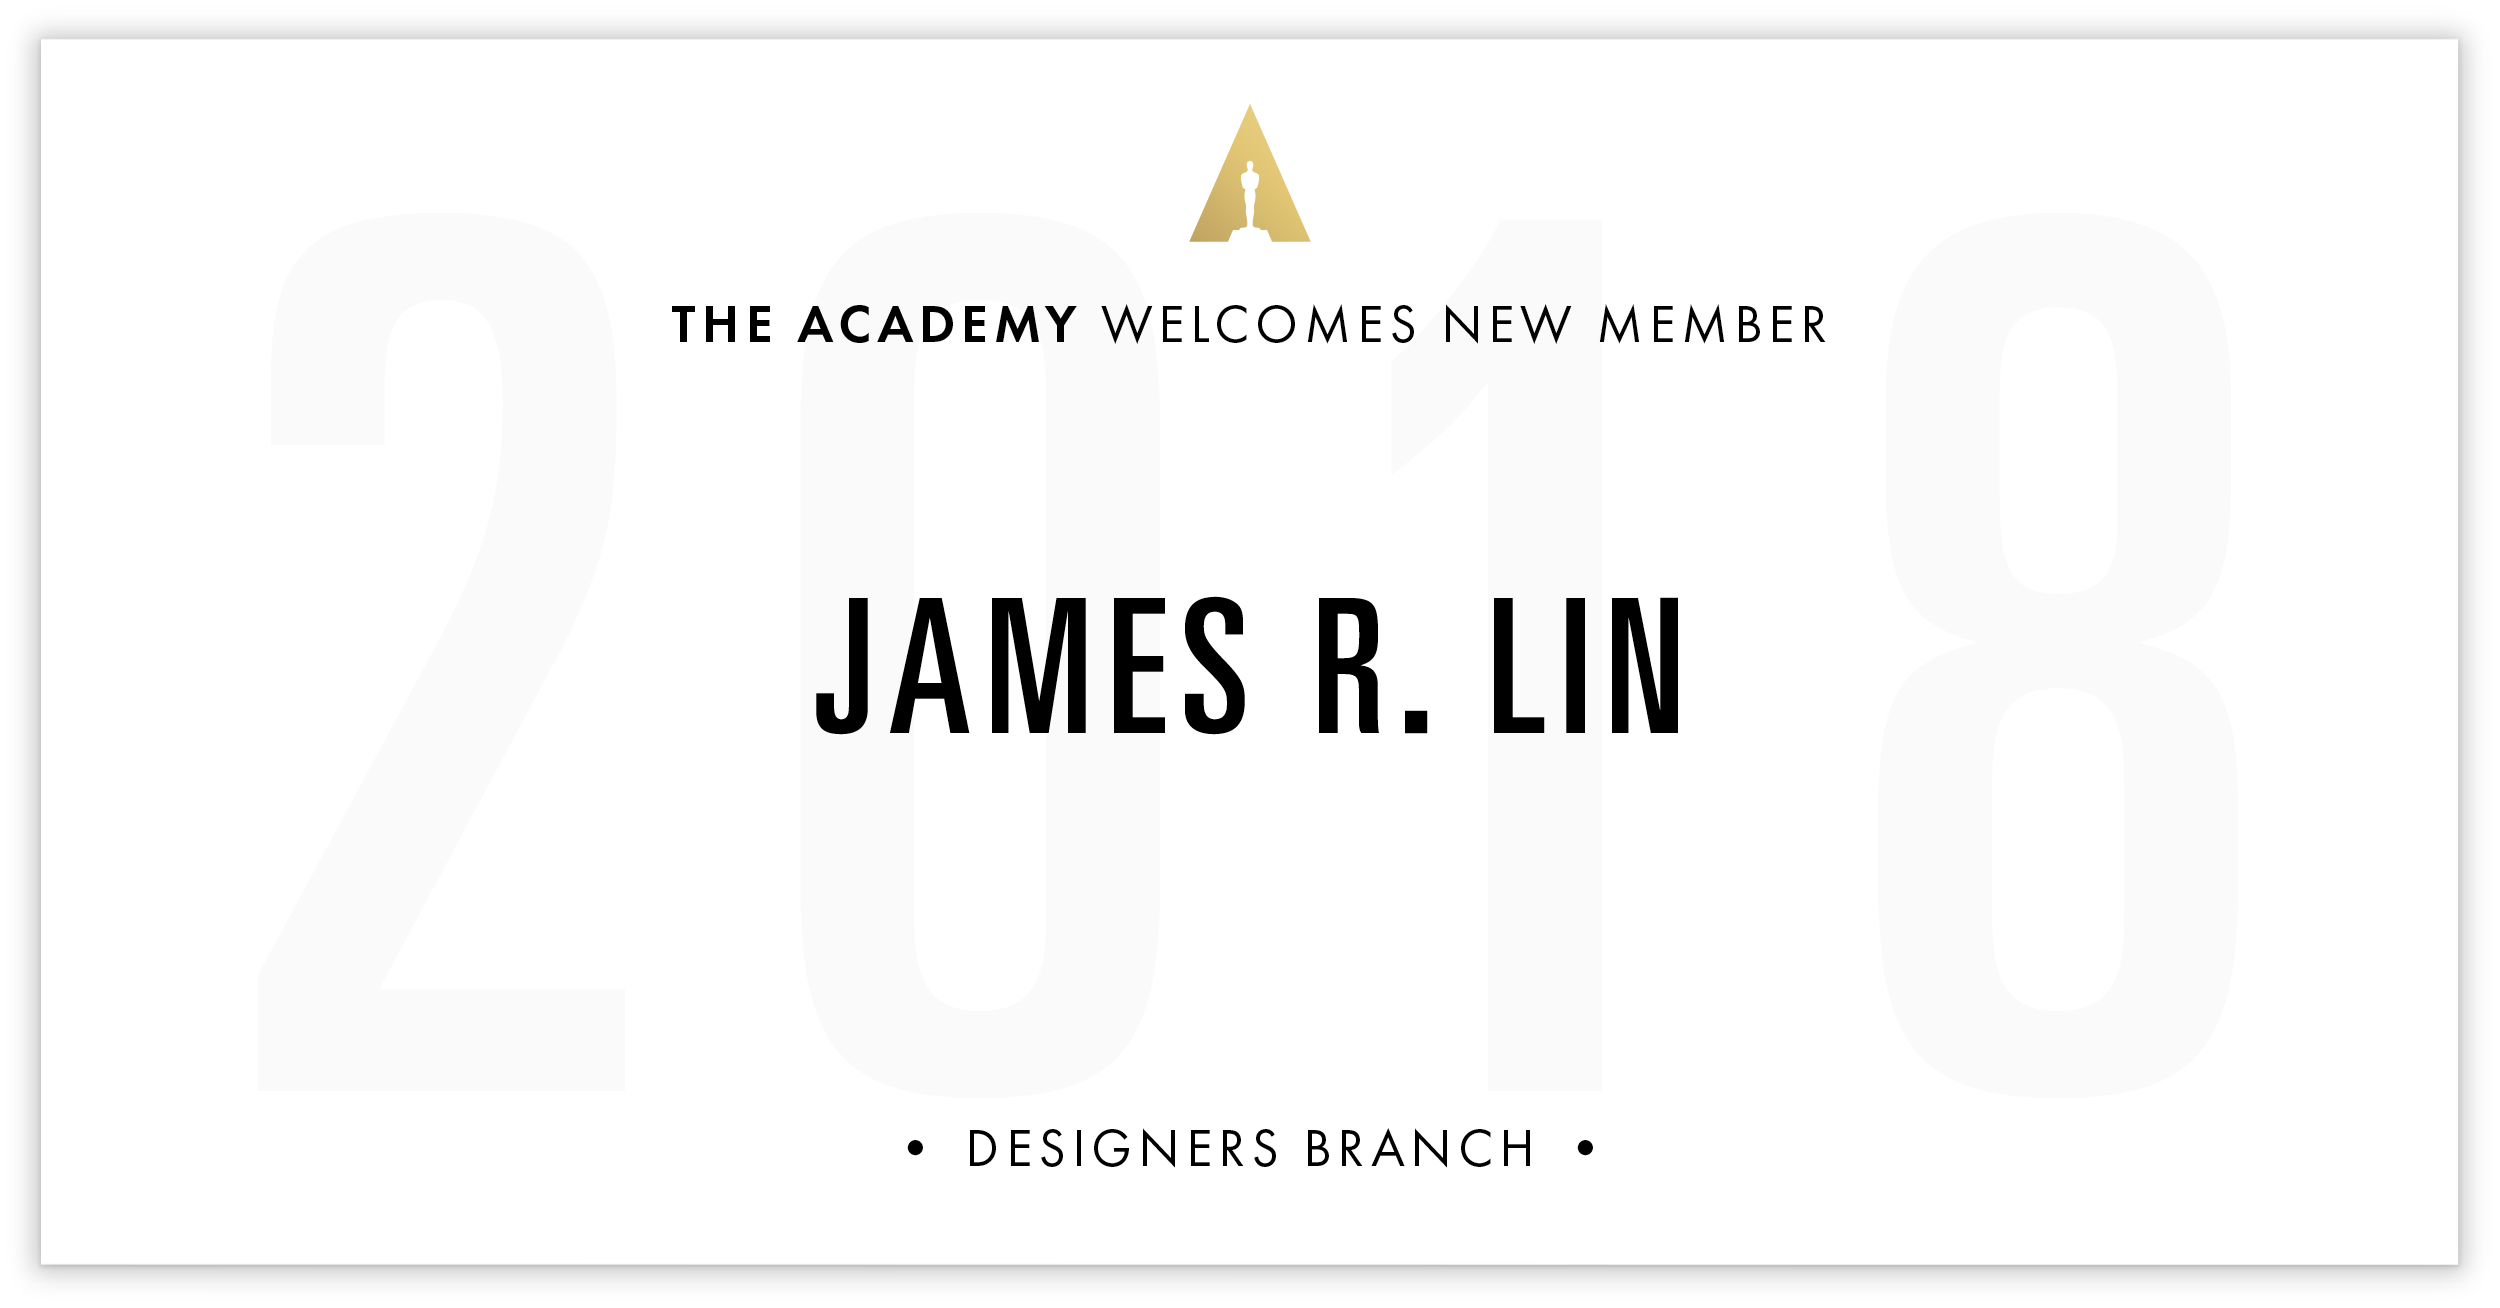 James Lin is invited!